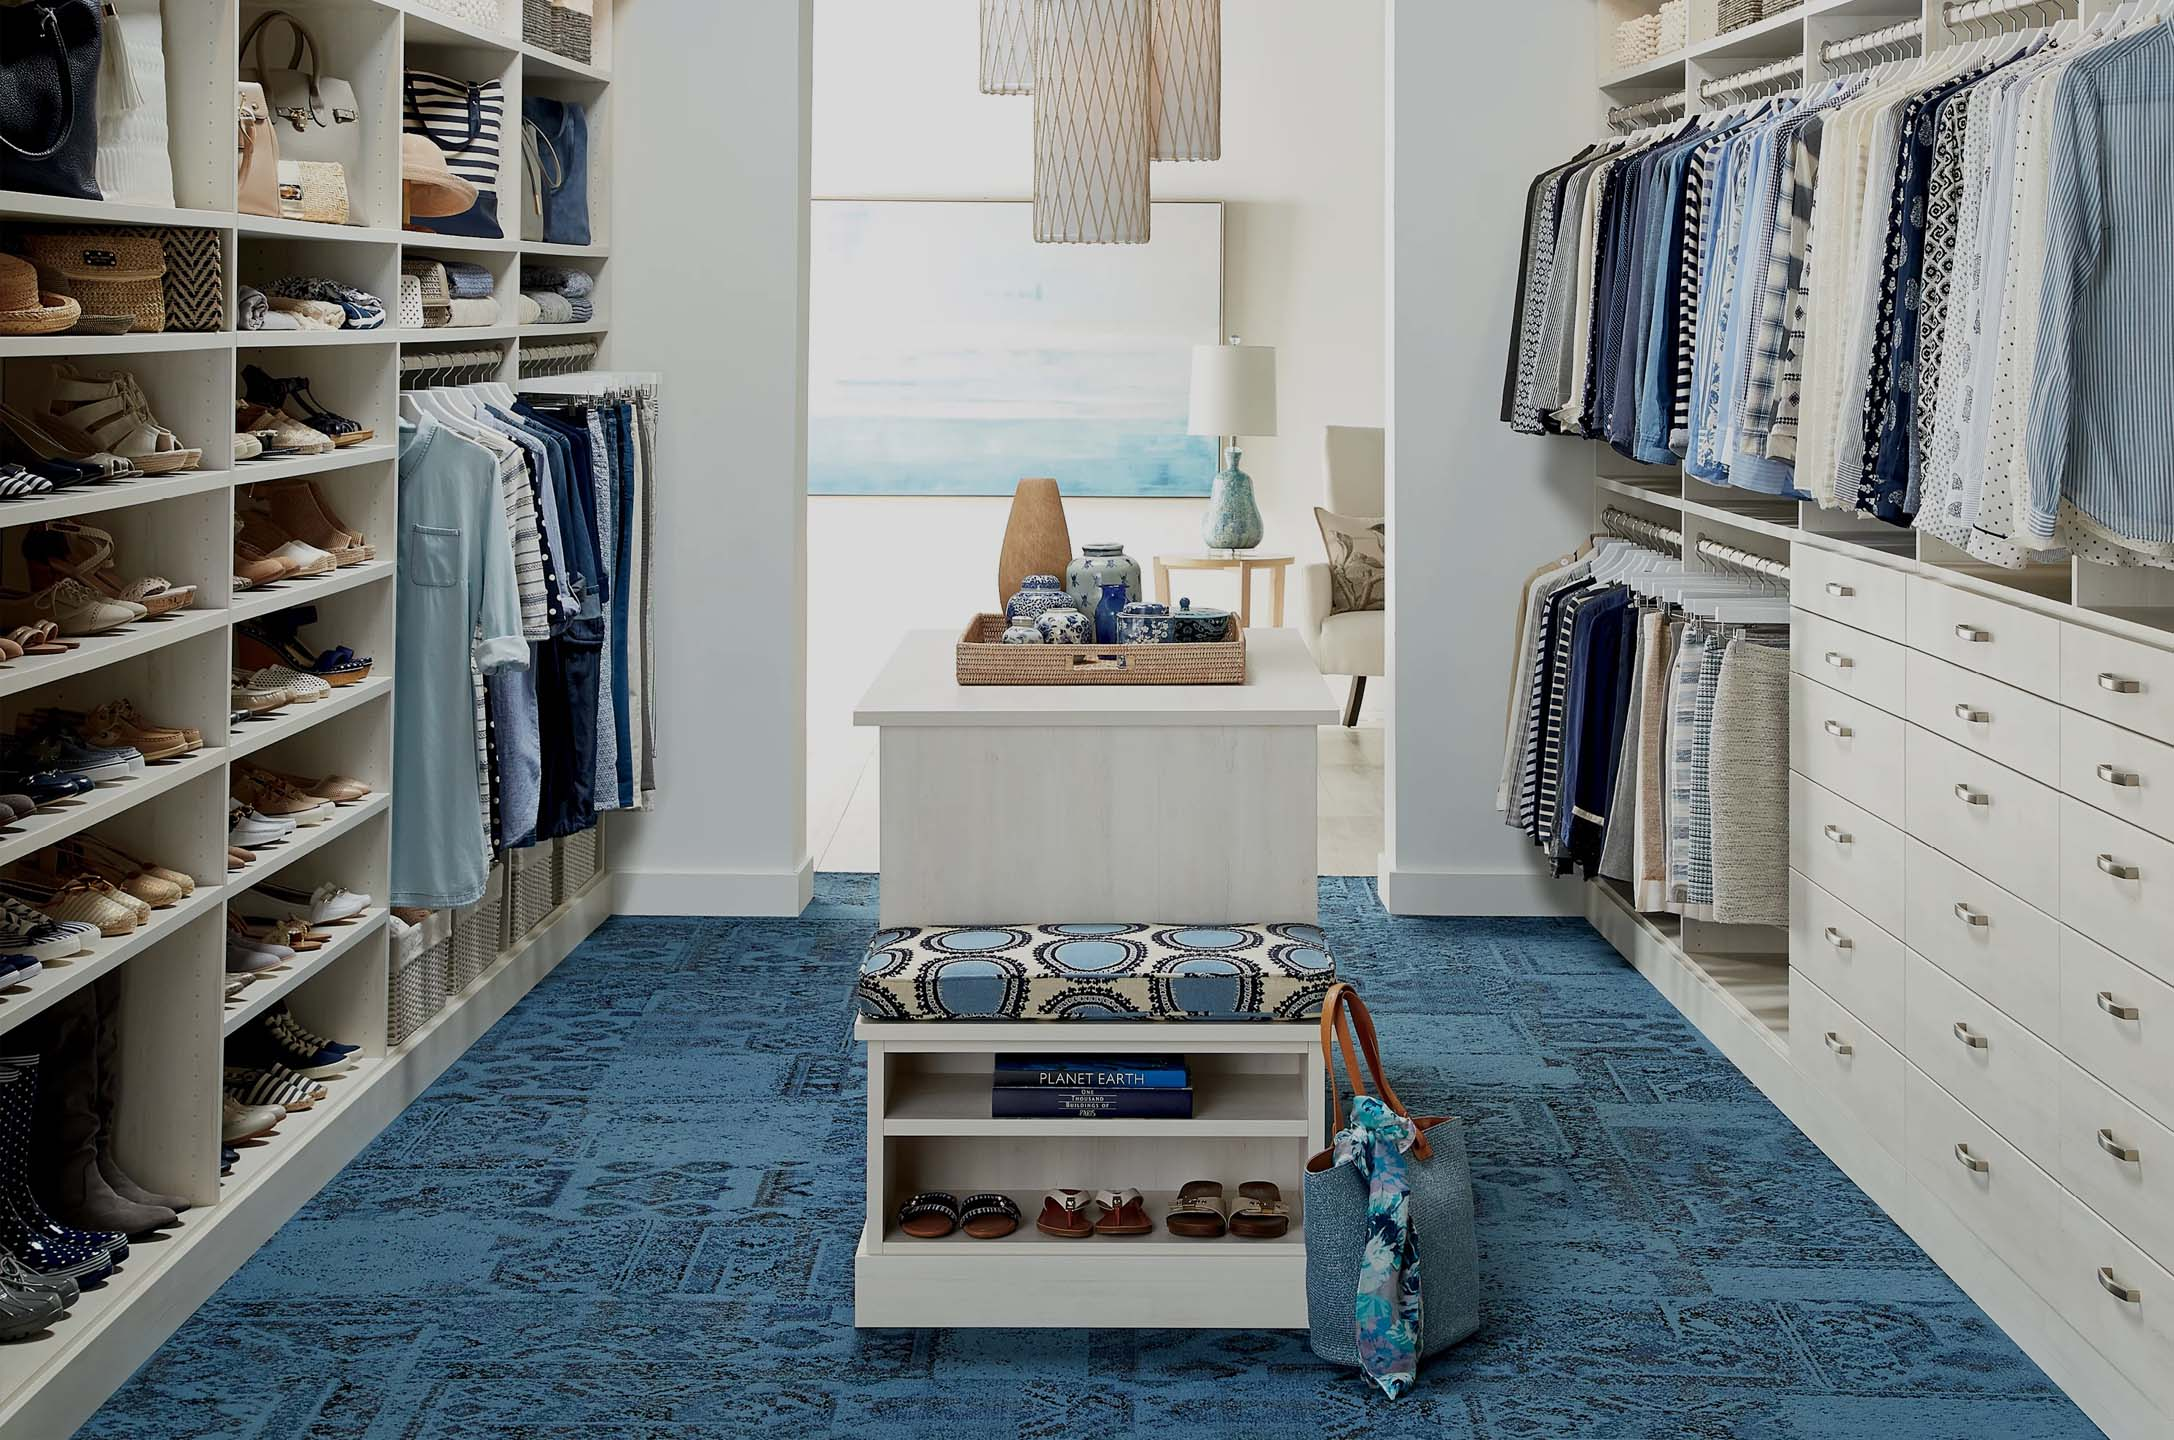 in-home closet organizing service at-home closet organizer professional closet help professional organizer person for my home o-15